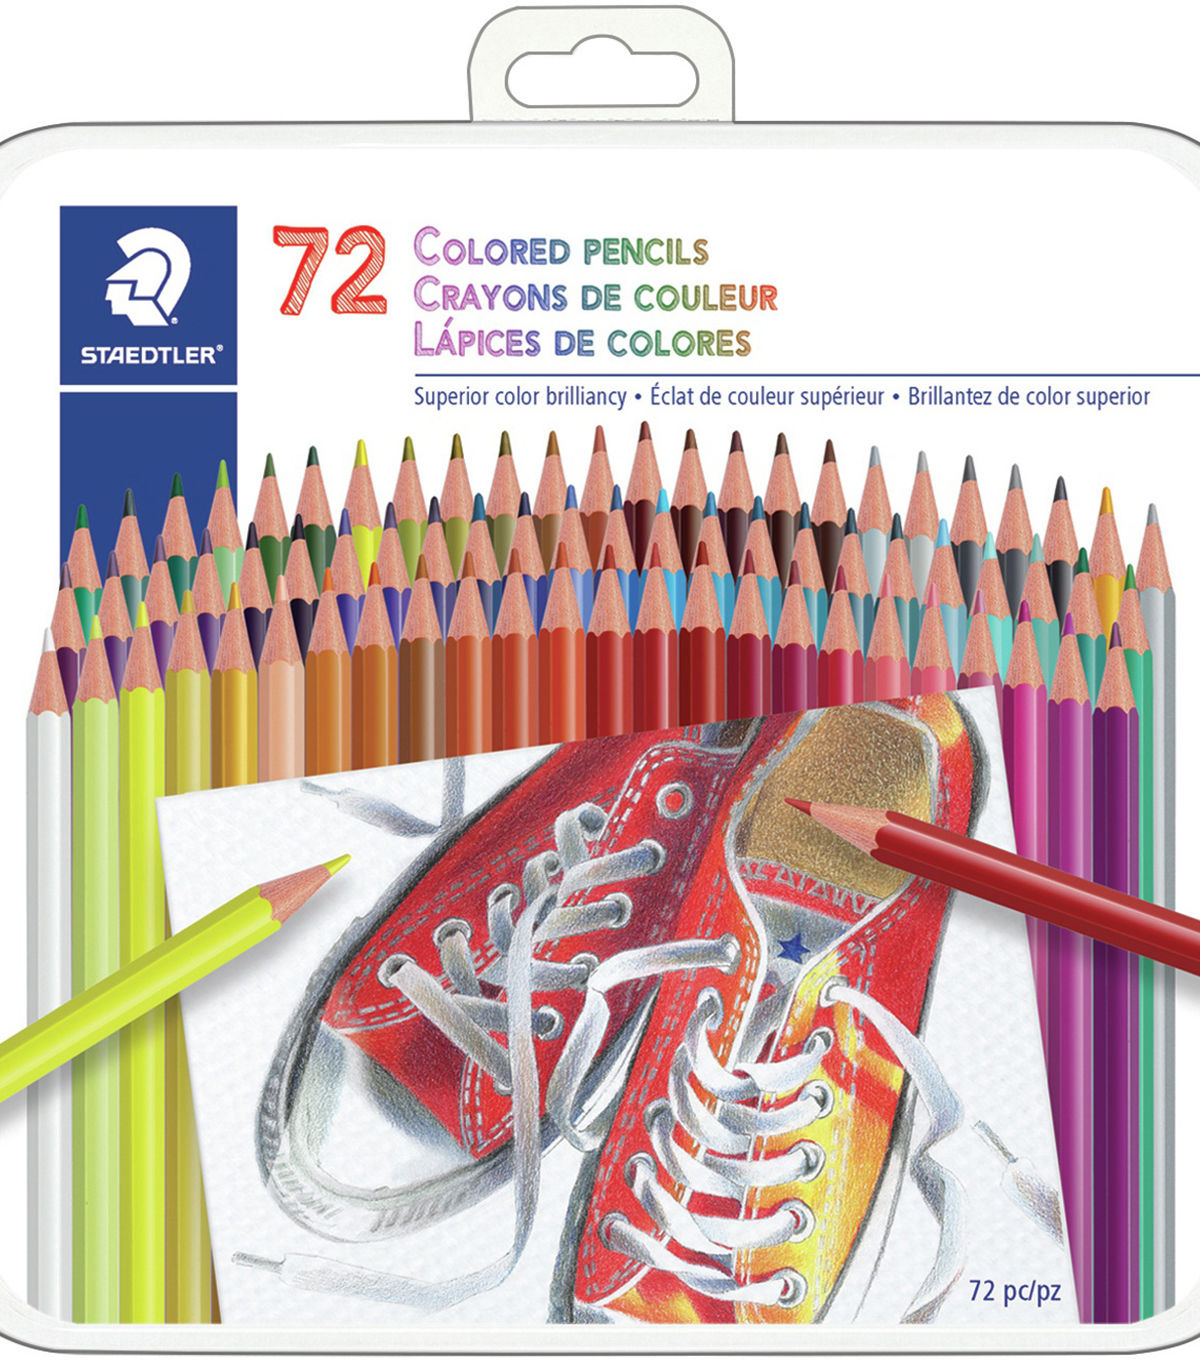 Staedtler Colored Pencils 72 Pkg Crayon Couleur Crayon De Couleur